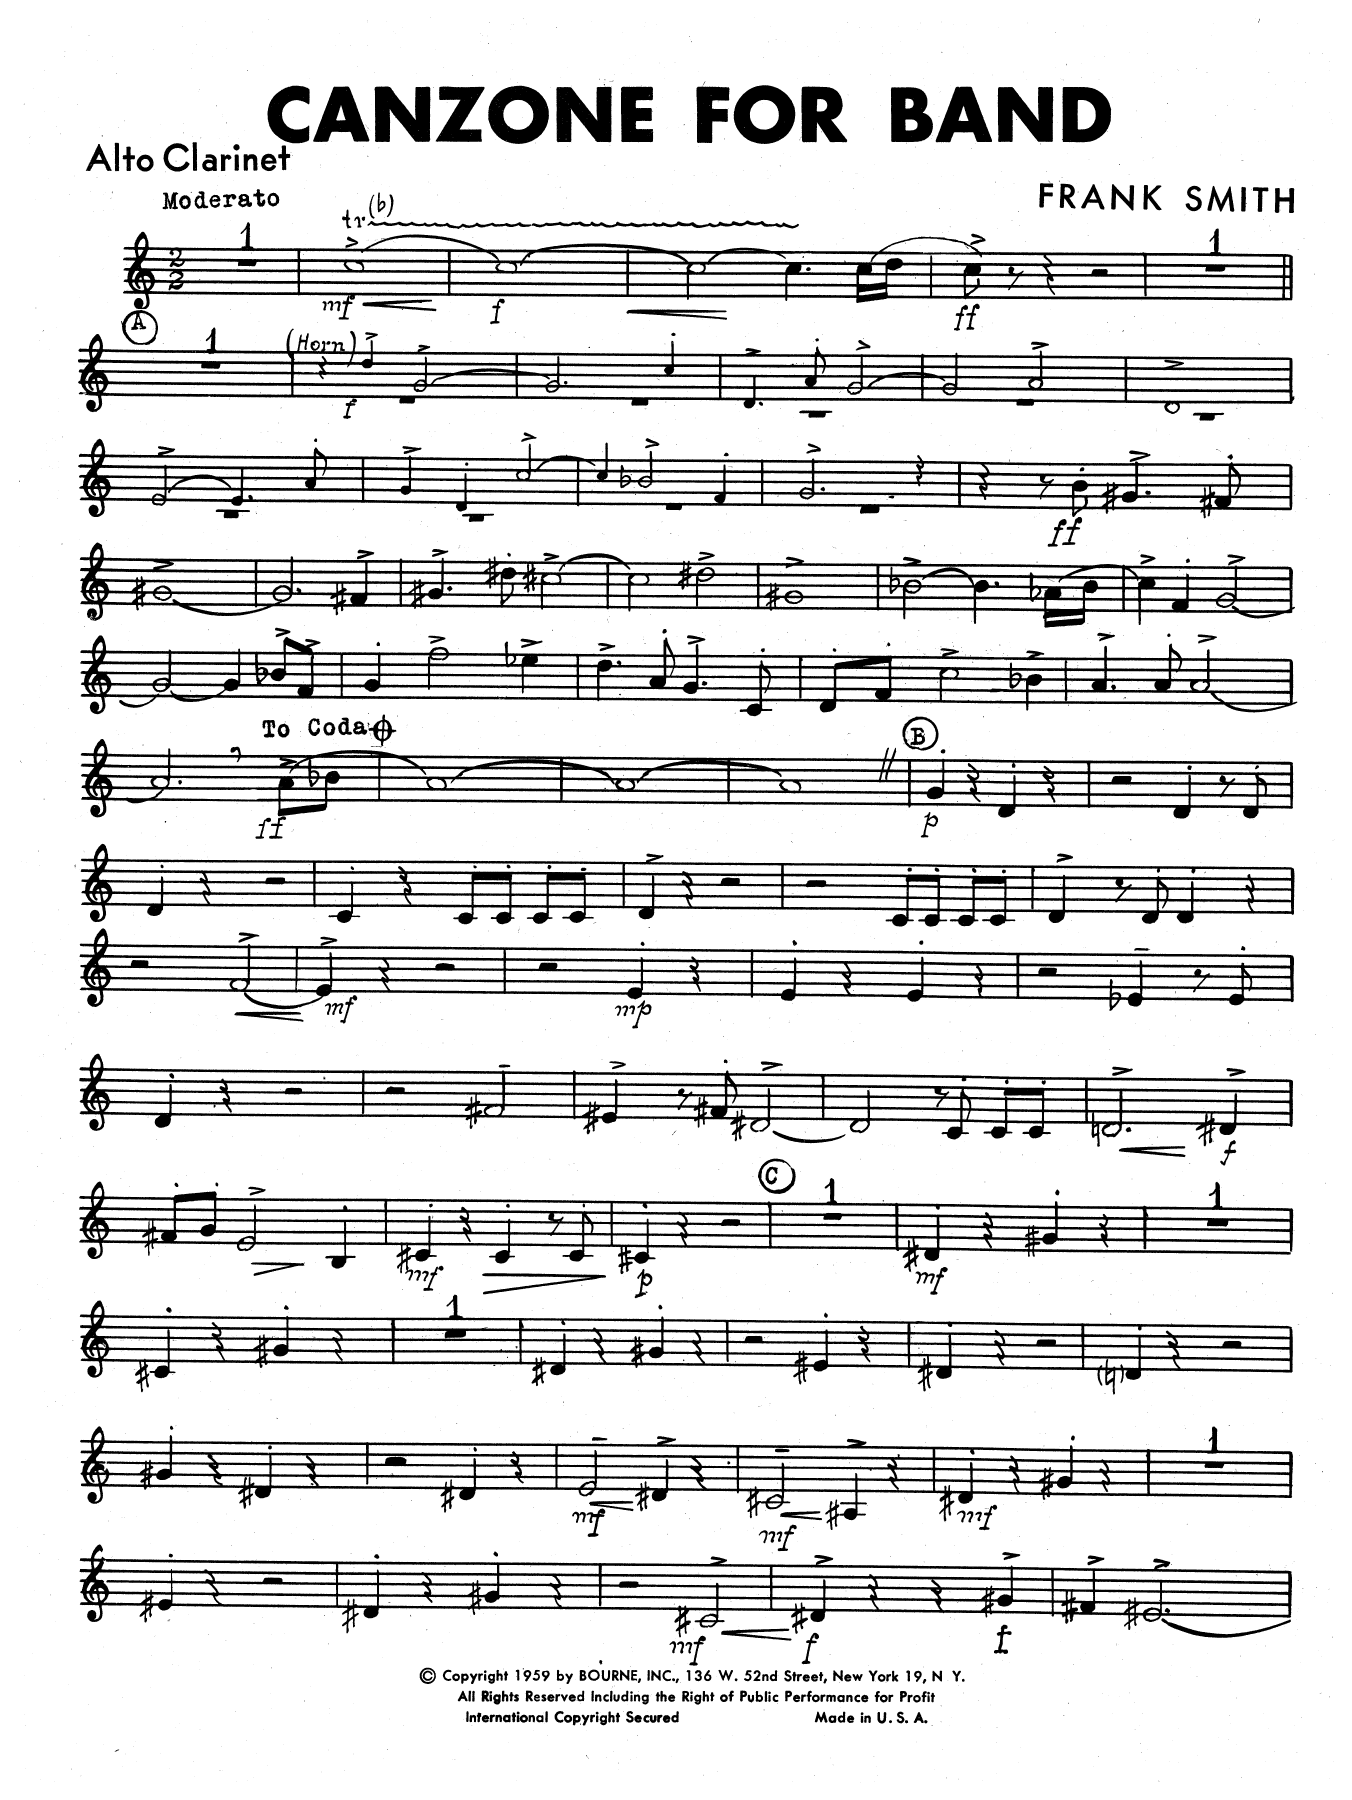 Canzone For Band - Alto Clarinet